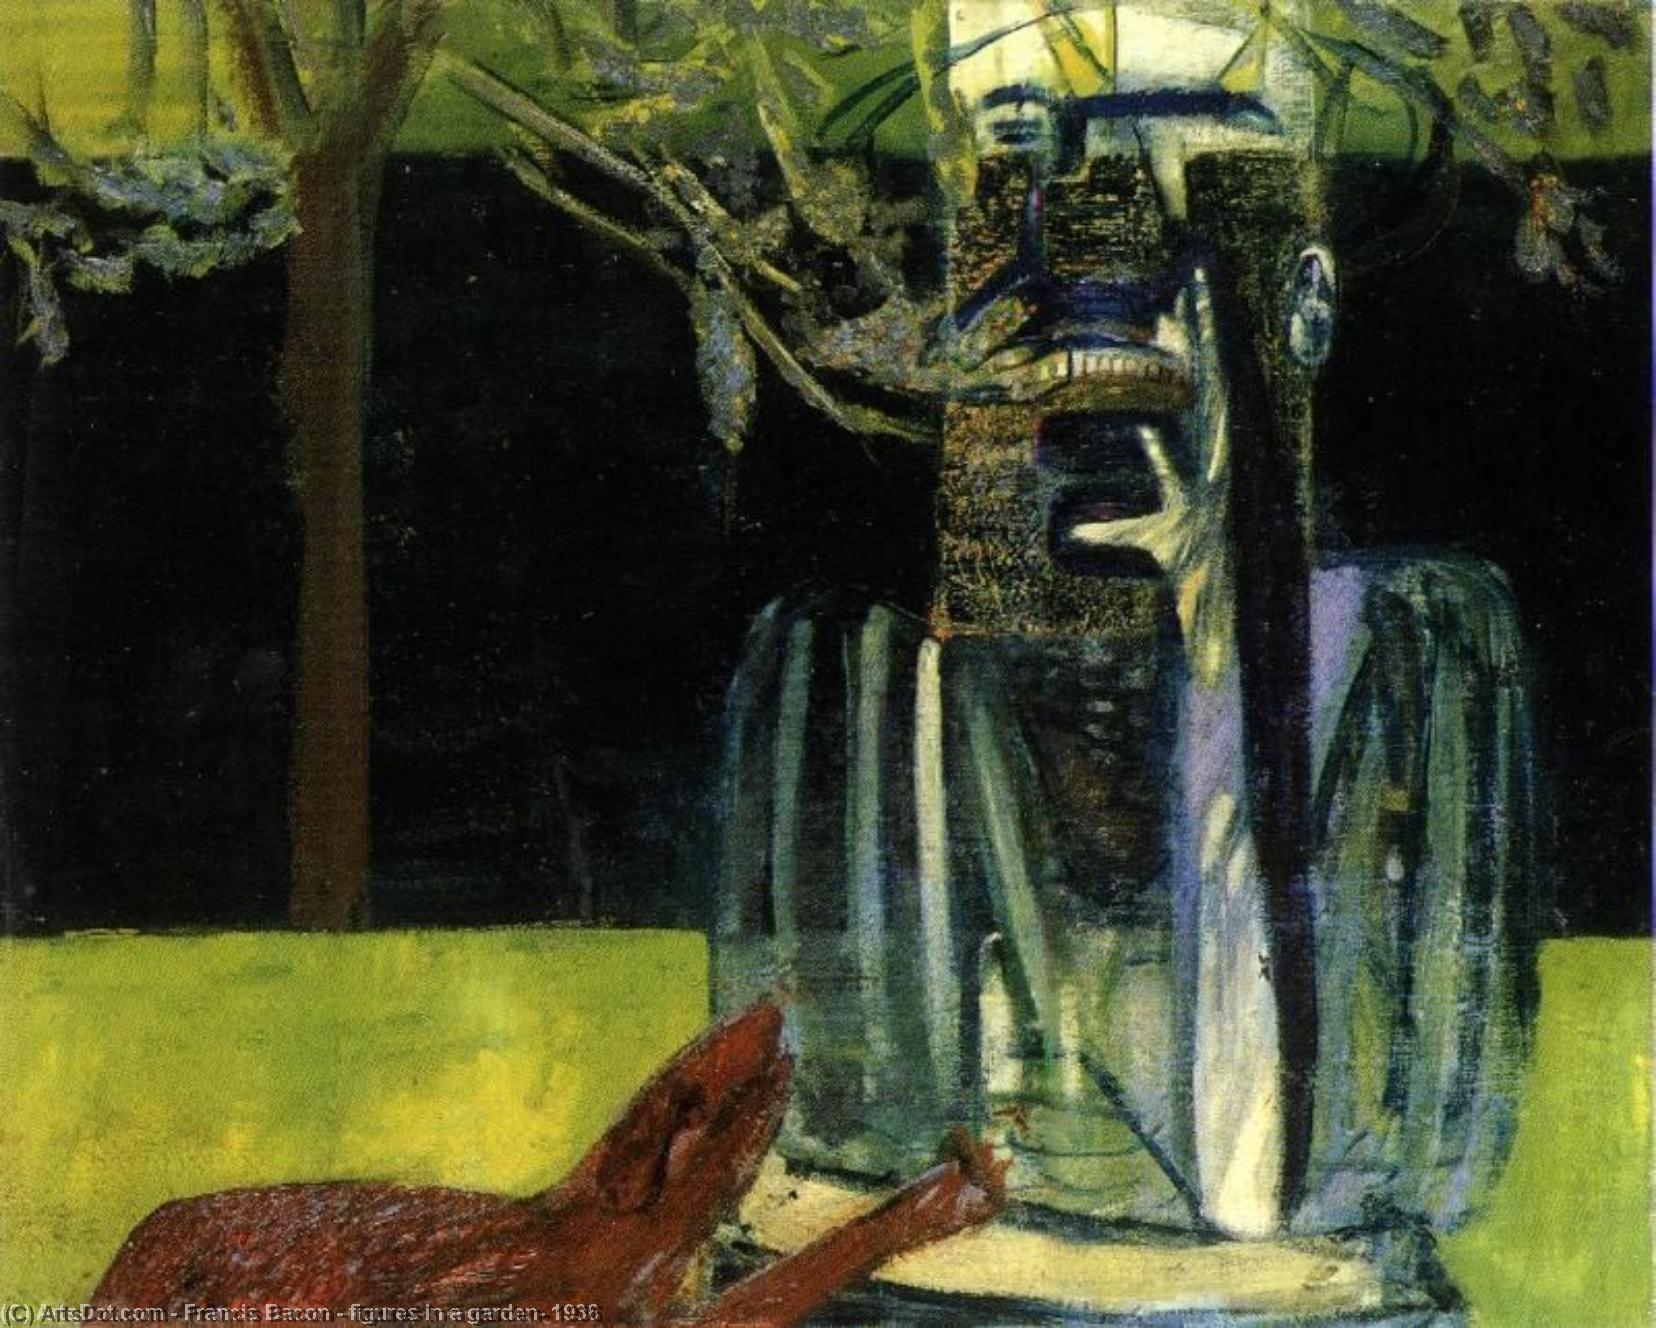 WikiOO.org - Enciclopedia of Fine Arts - Pictura, lucrări de artă Francis Bacon - figures in a garden, 1936